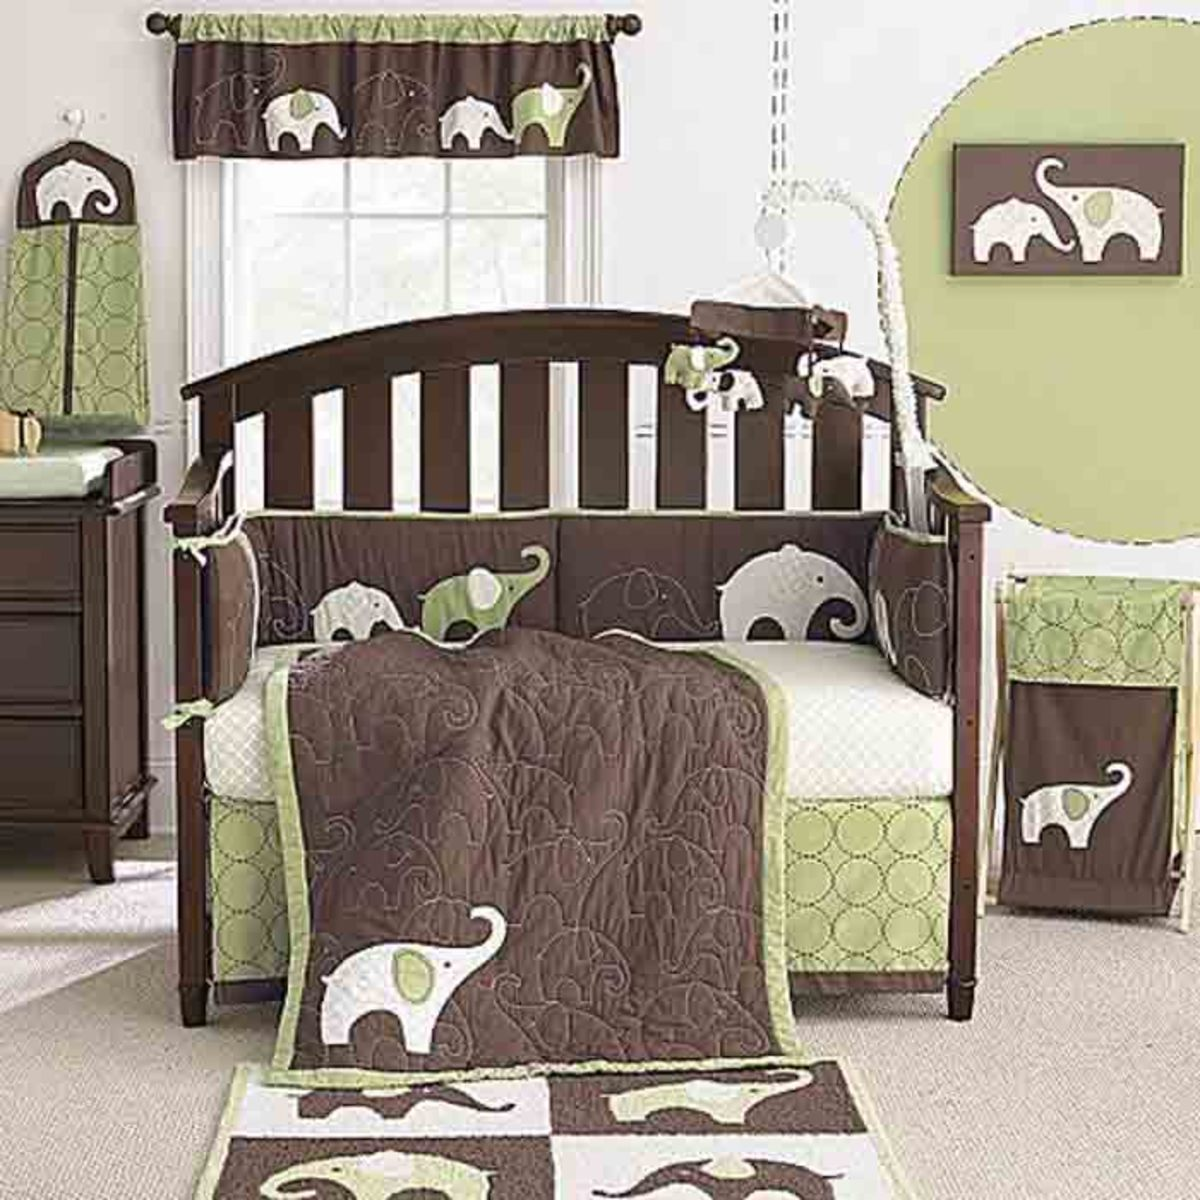 Decorating ideas for a baby boy nursery for Baby boy s room decoration